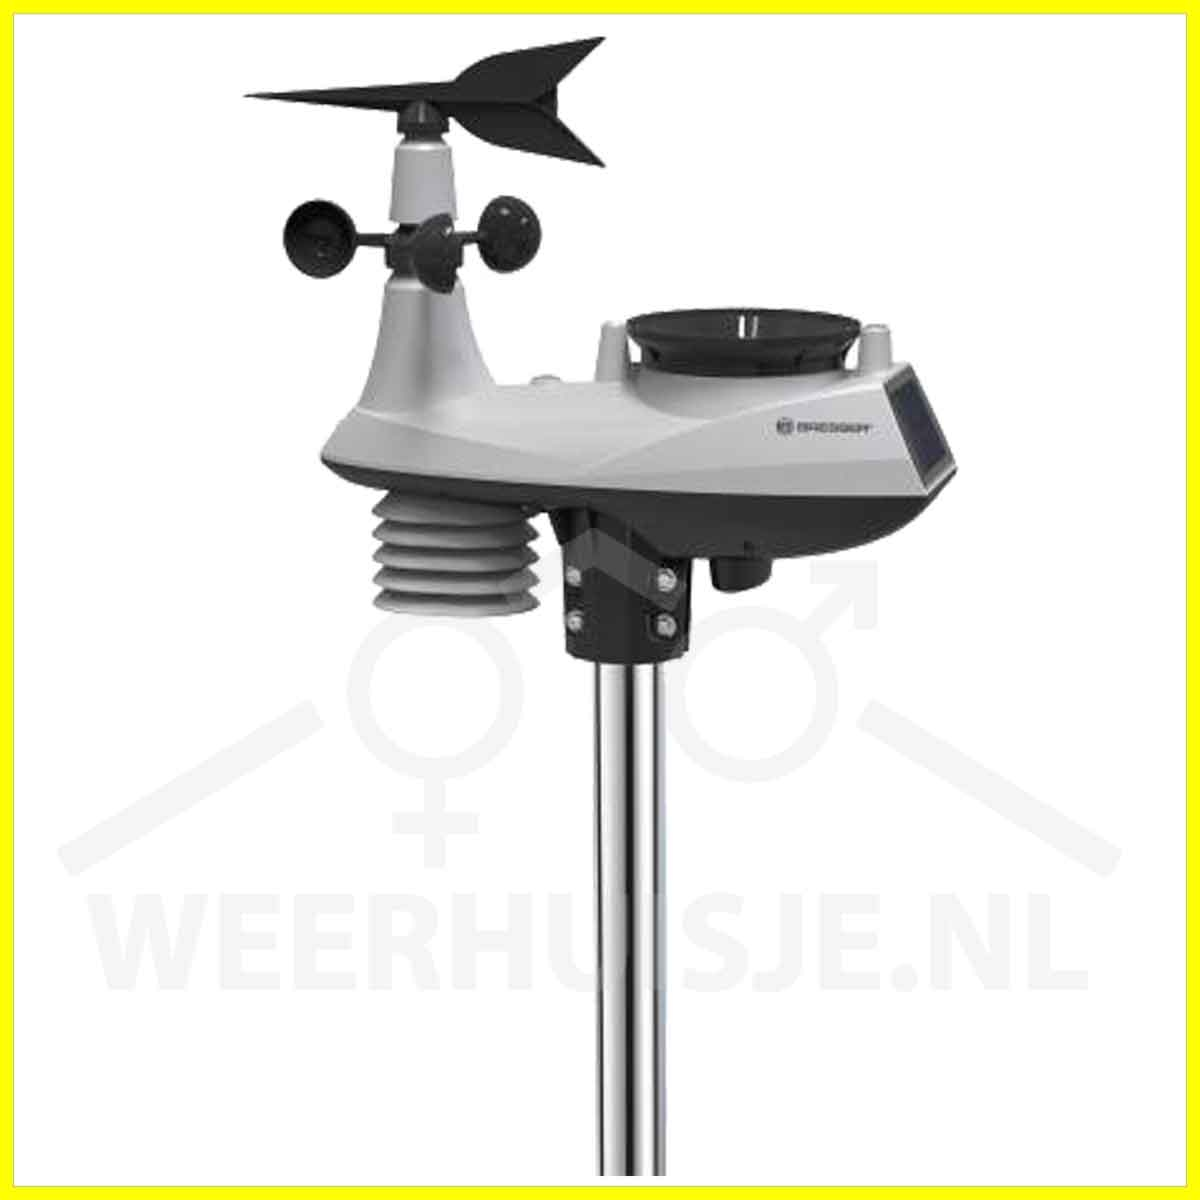 BR-7002570 Bresser 6-in-1 weather station